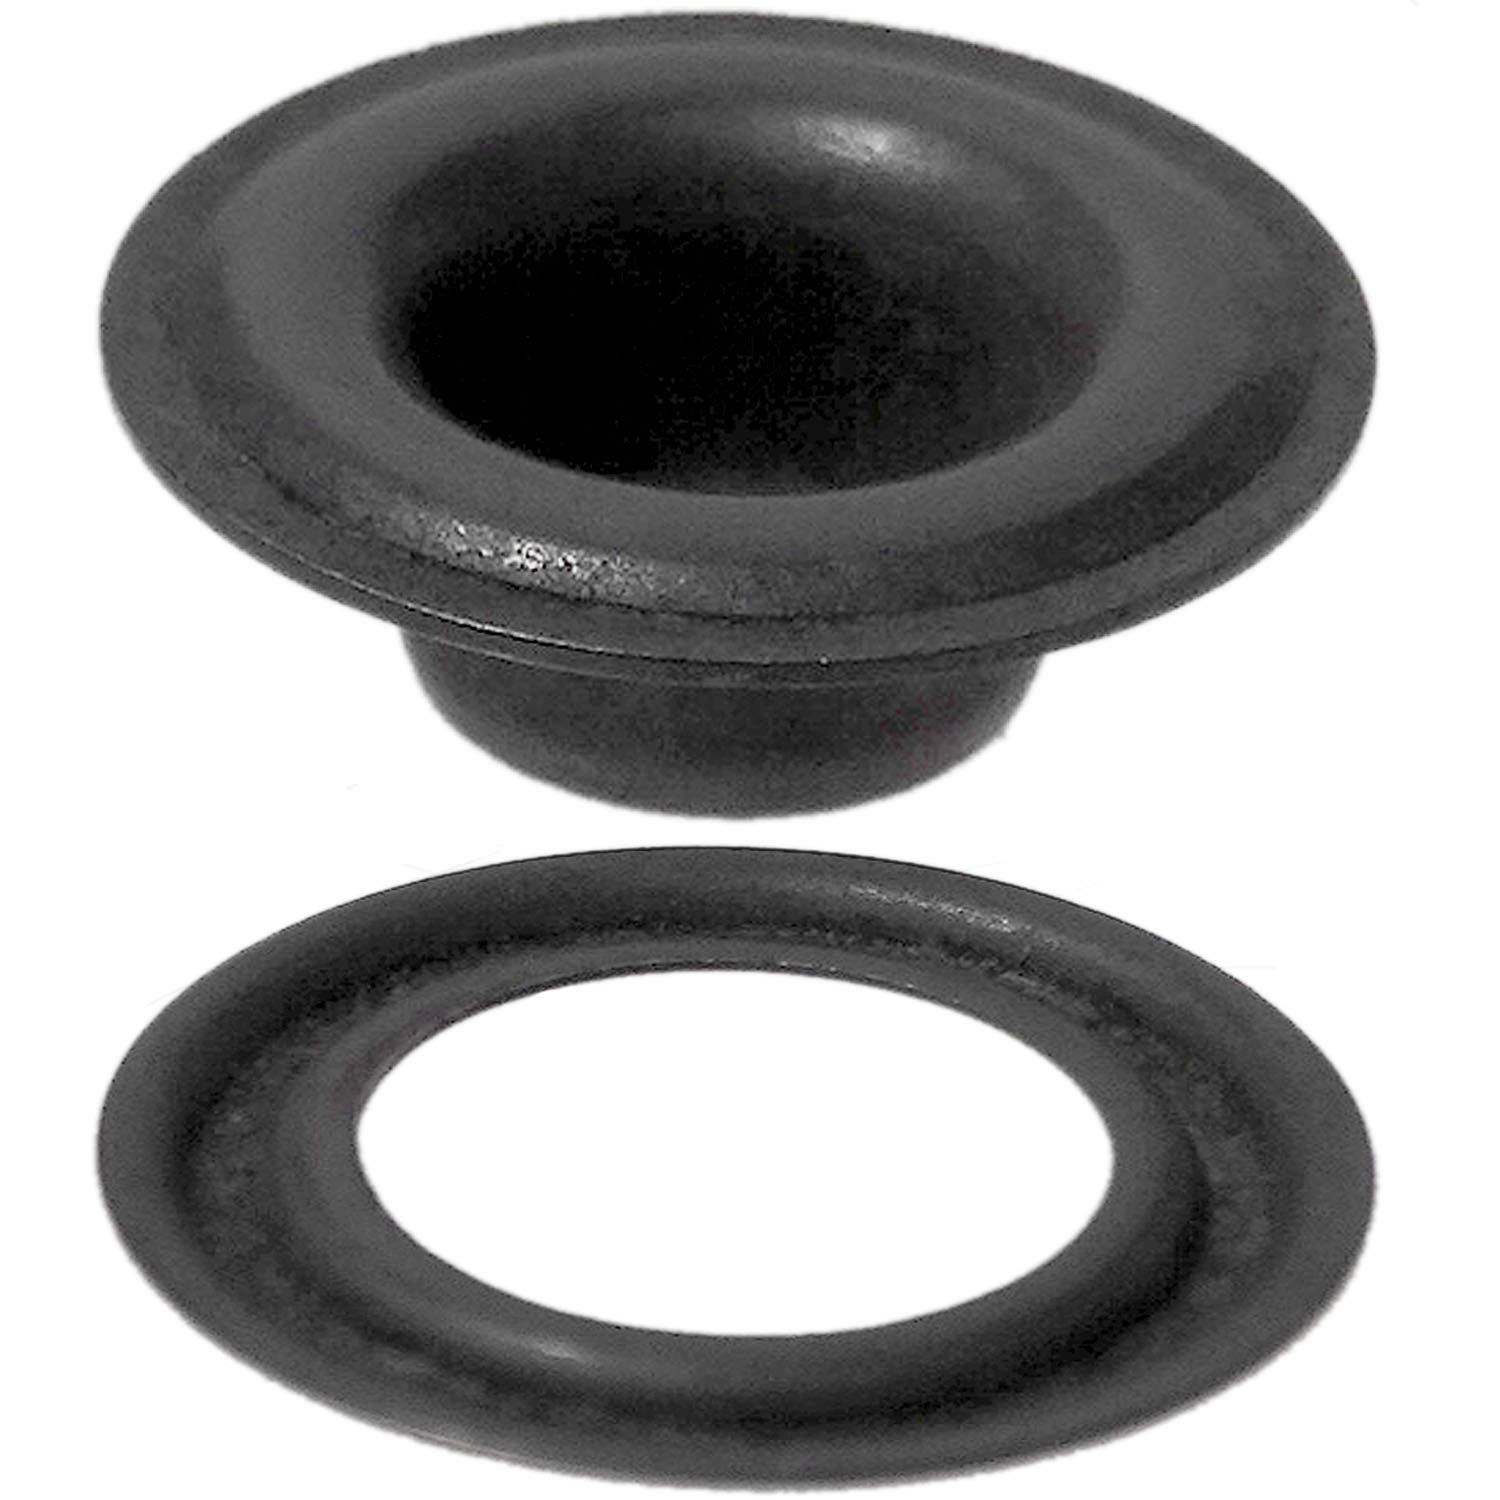 Stimpson Self-Piercing Grommet and Washer Dull Black Chem Reliable, Durable, Heavy-Duty #3 Set (300 Pieces of Each) Stimpson Co. Inc.